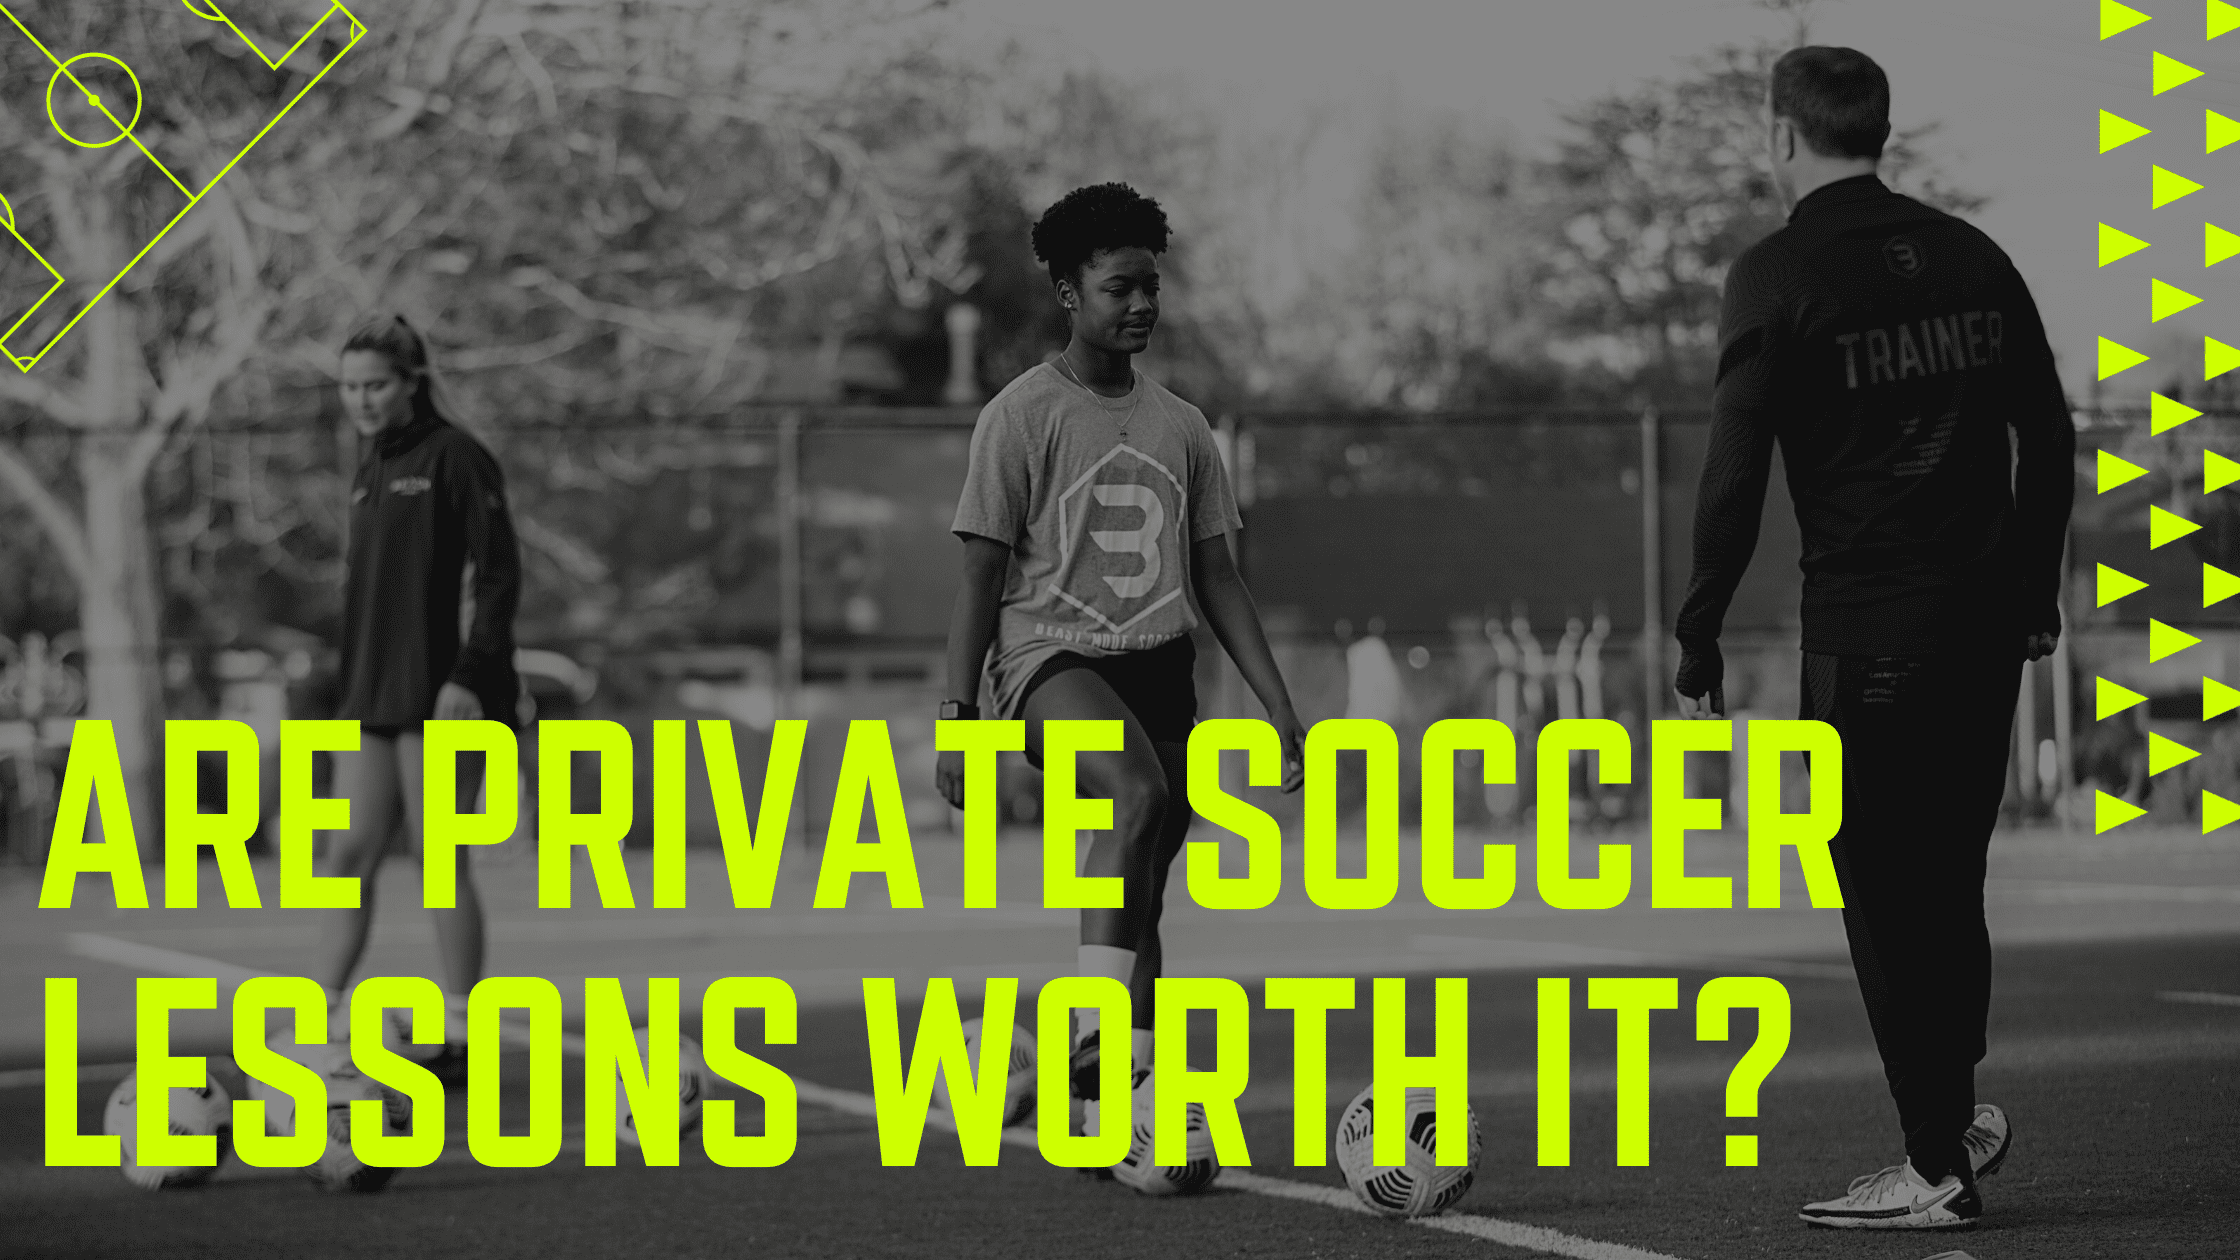 Are private soccer lessons worth it?